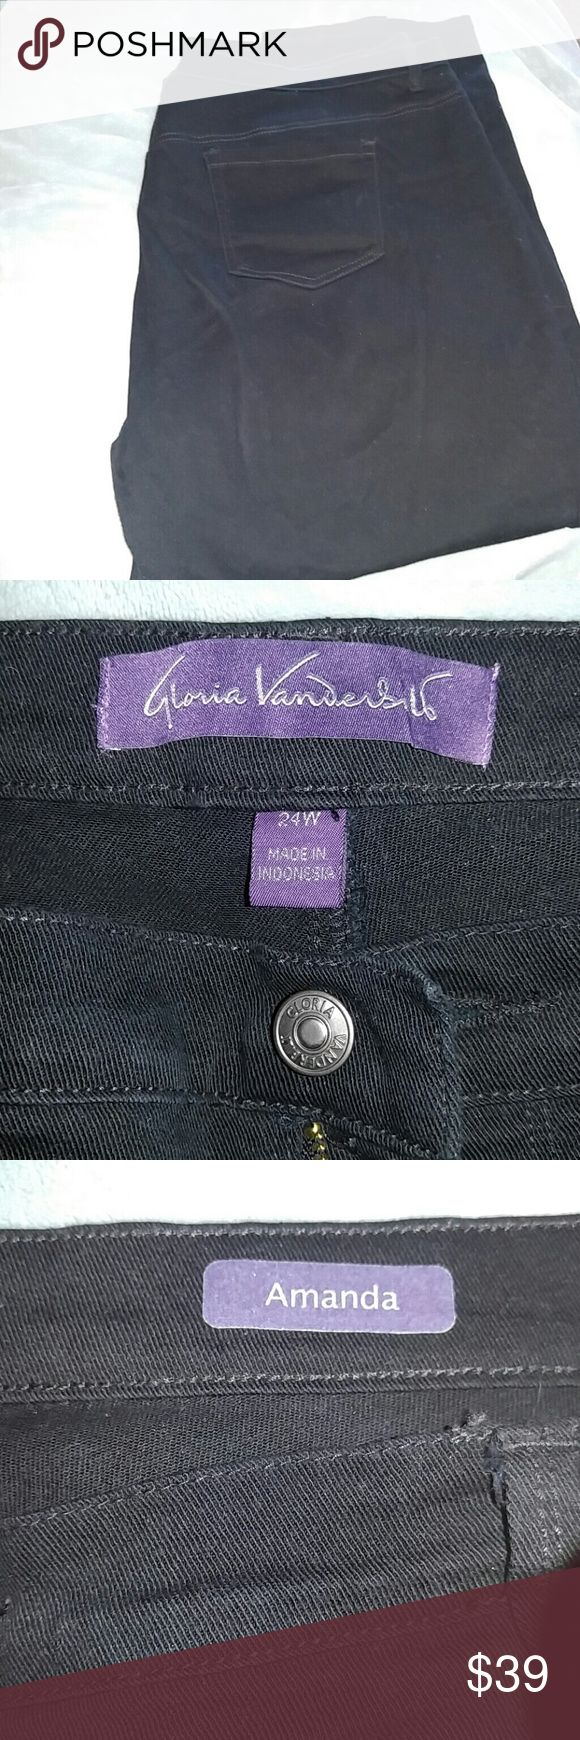 GLORIA VANDERBILT BLACK JEANS Size 24W  has some spandex in them easy to wear and so comfortable. Looks fantastic on. Very slimming. Gloria Vanderbilt Jeans Boyfriend